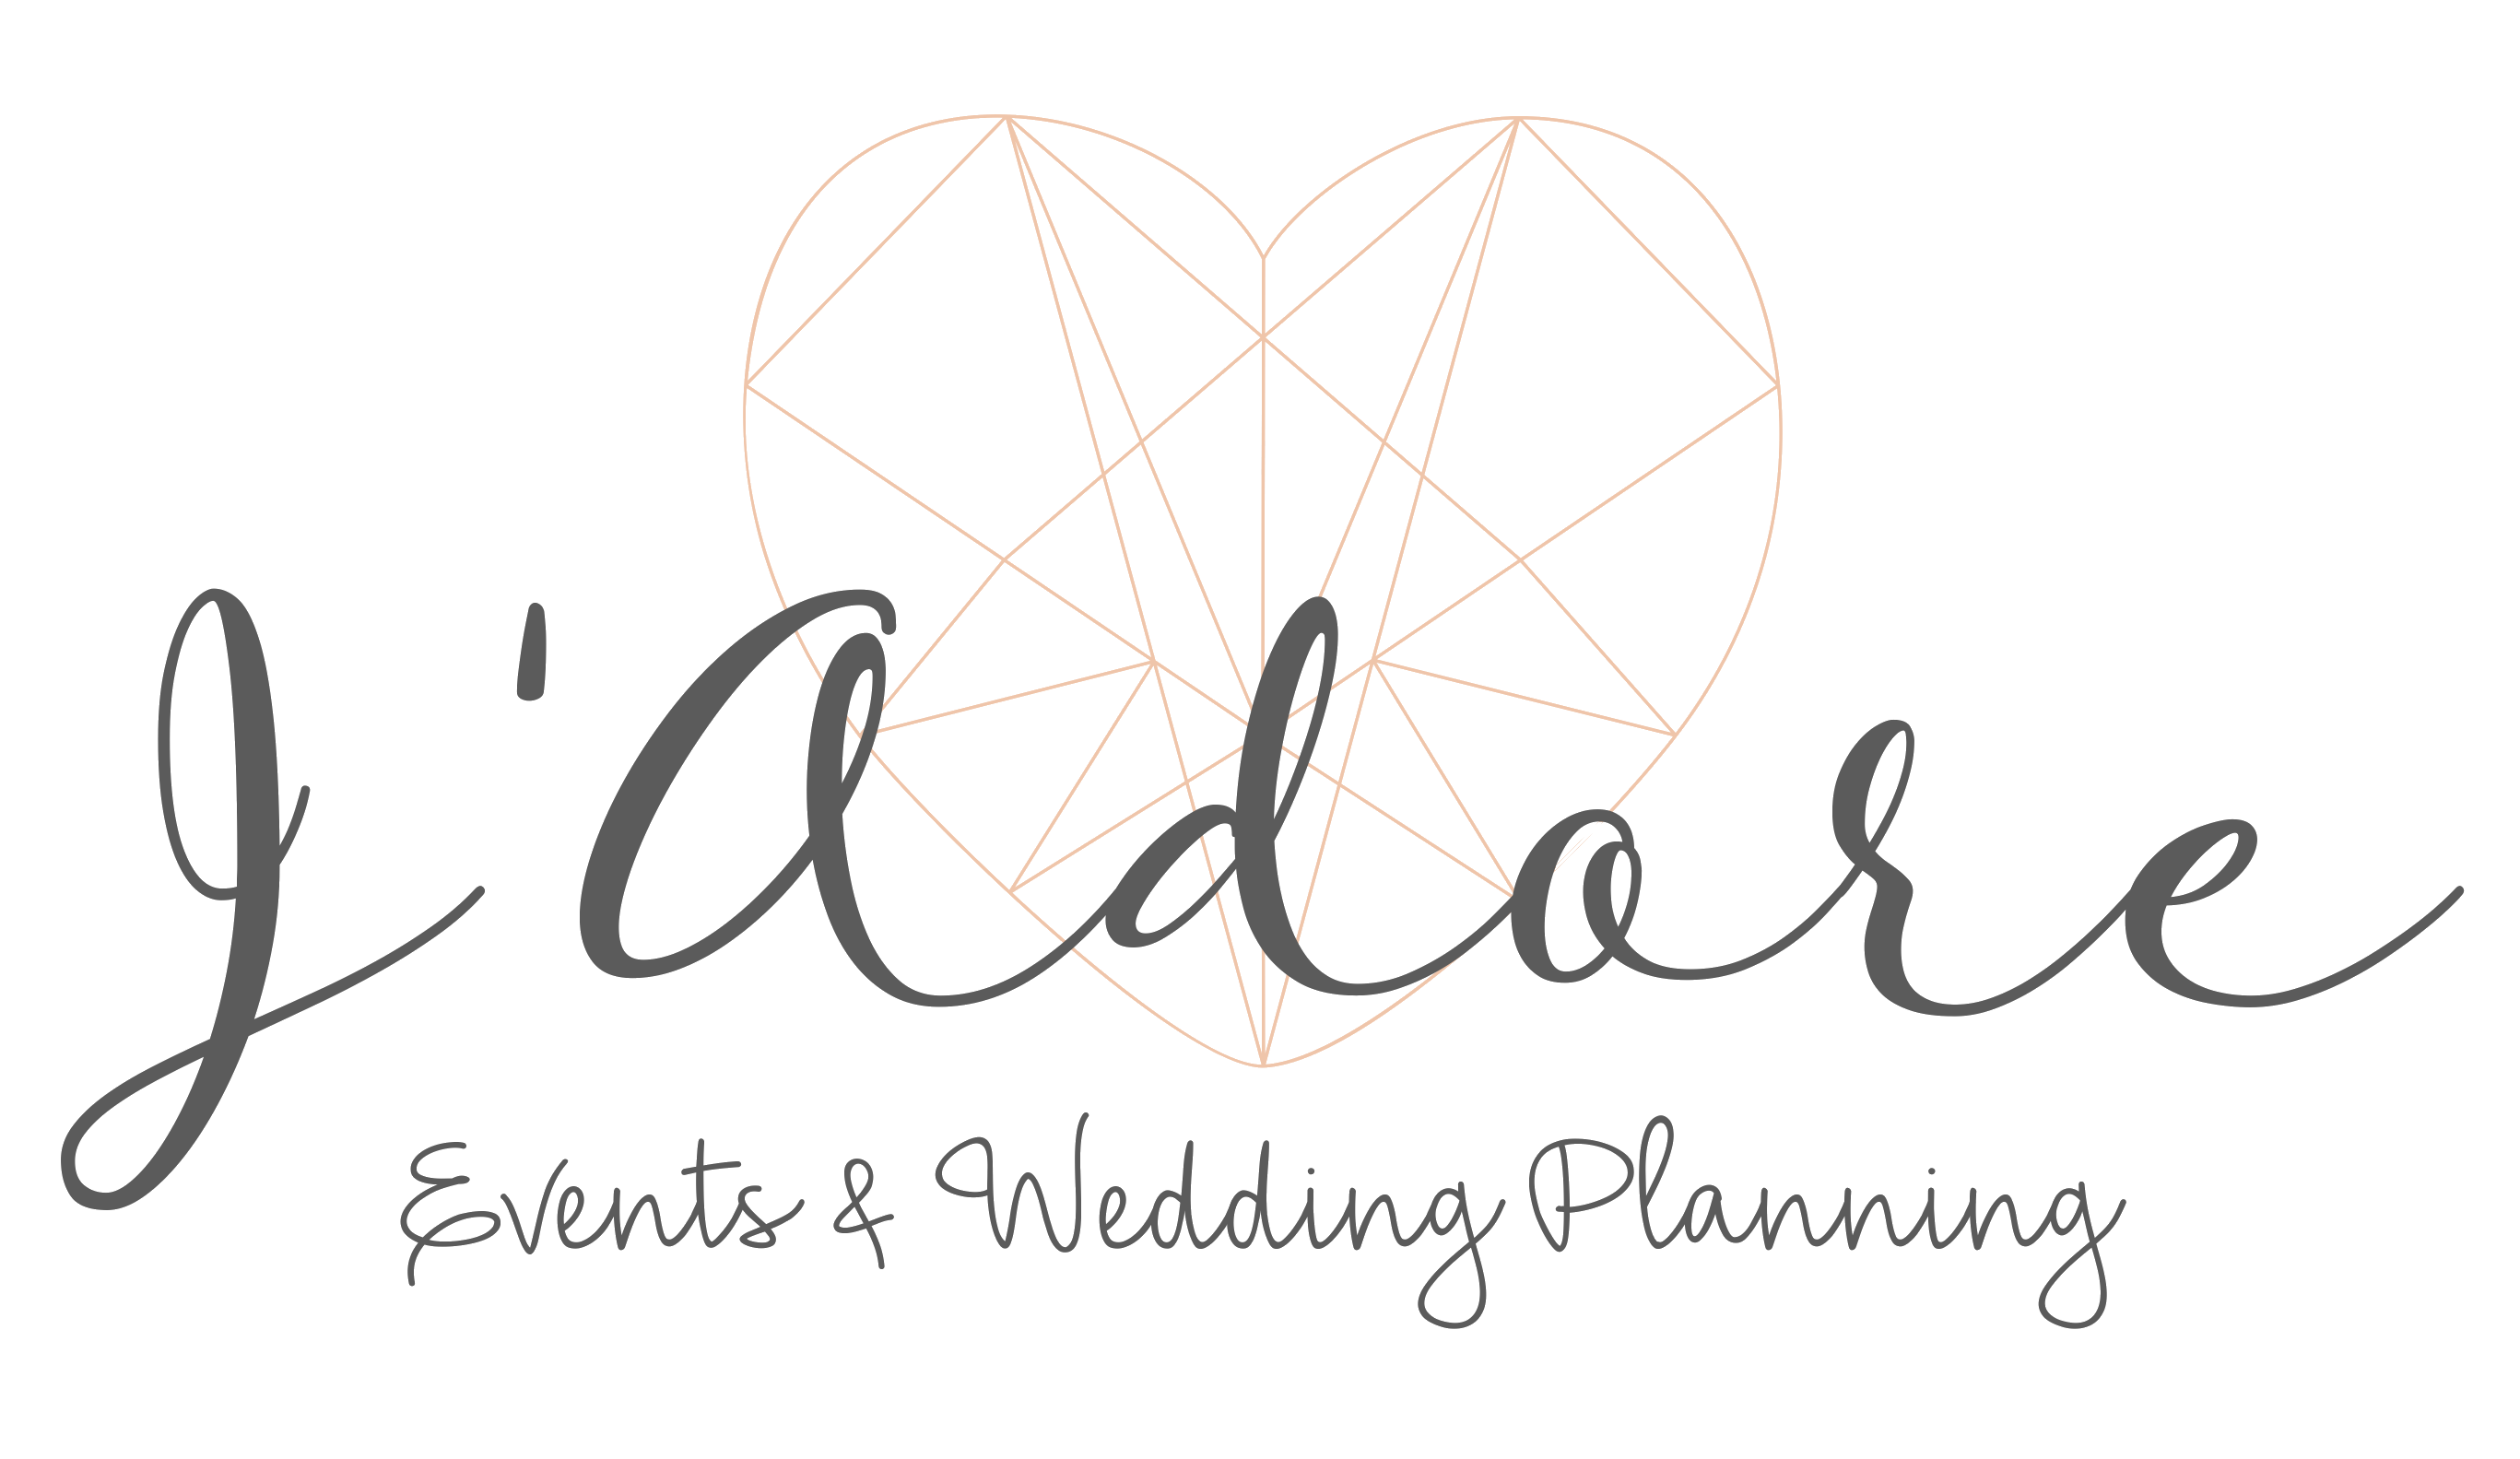 J´adore, Algarve Events & Wedding Planning